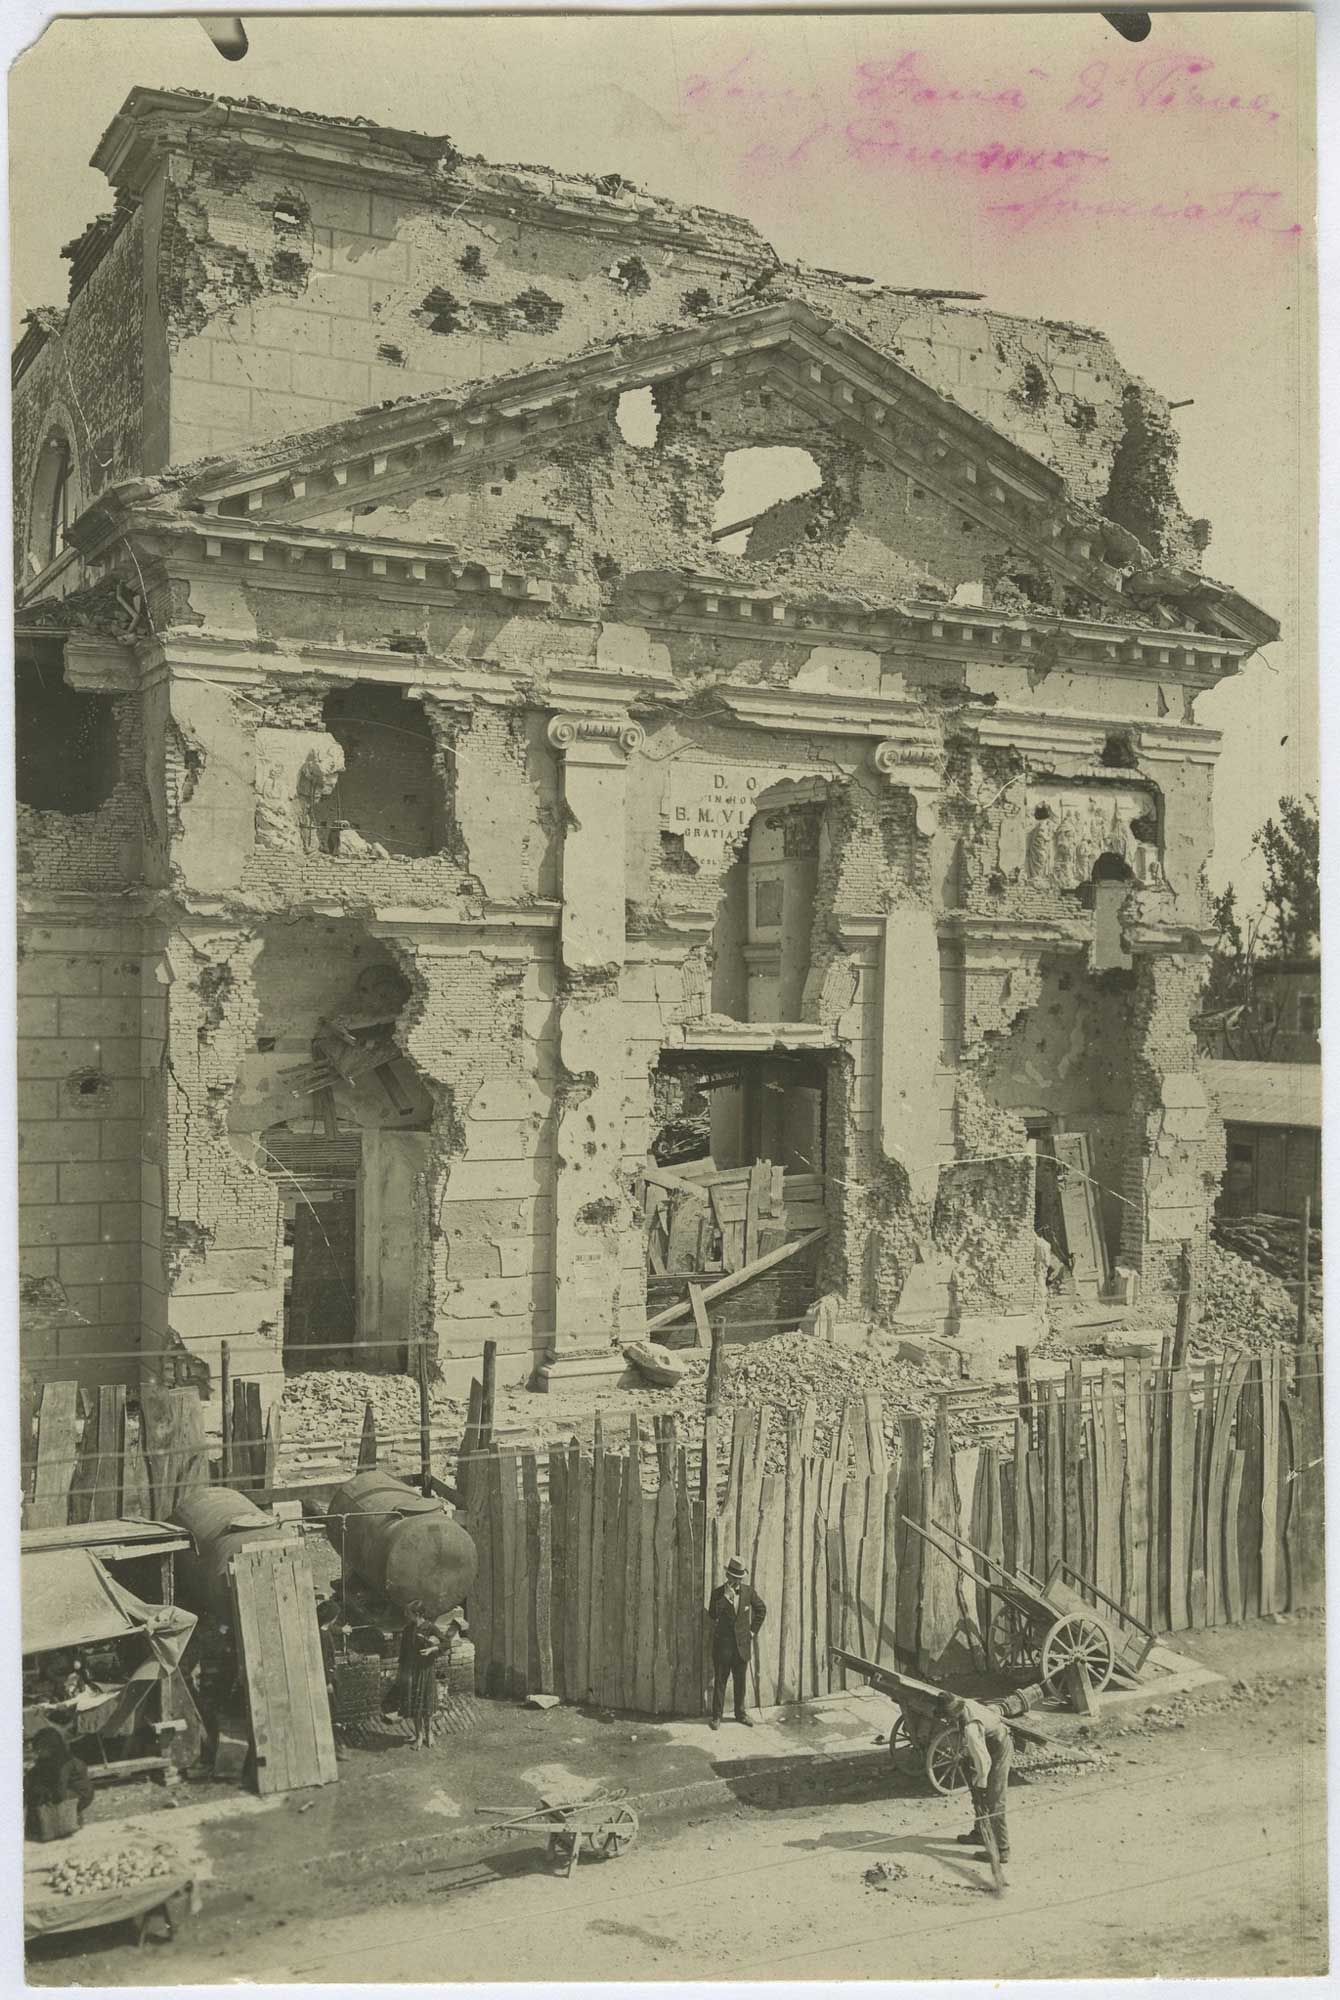 Façade of the Duomo di San Dona del Piava destroyed after the fighting